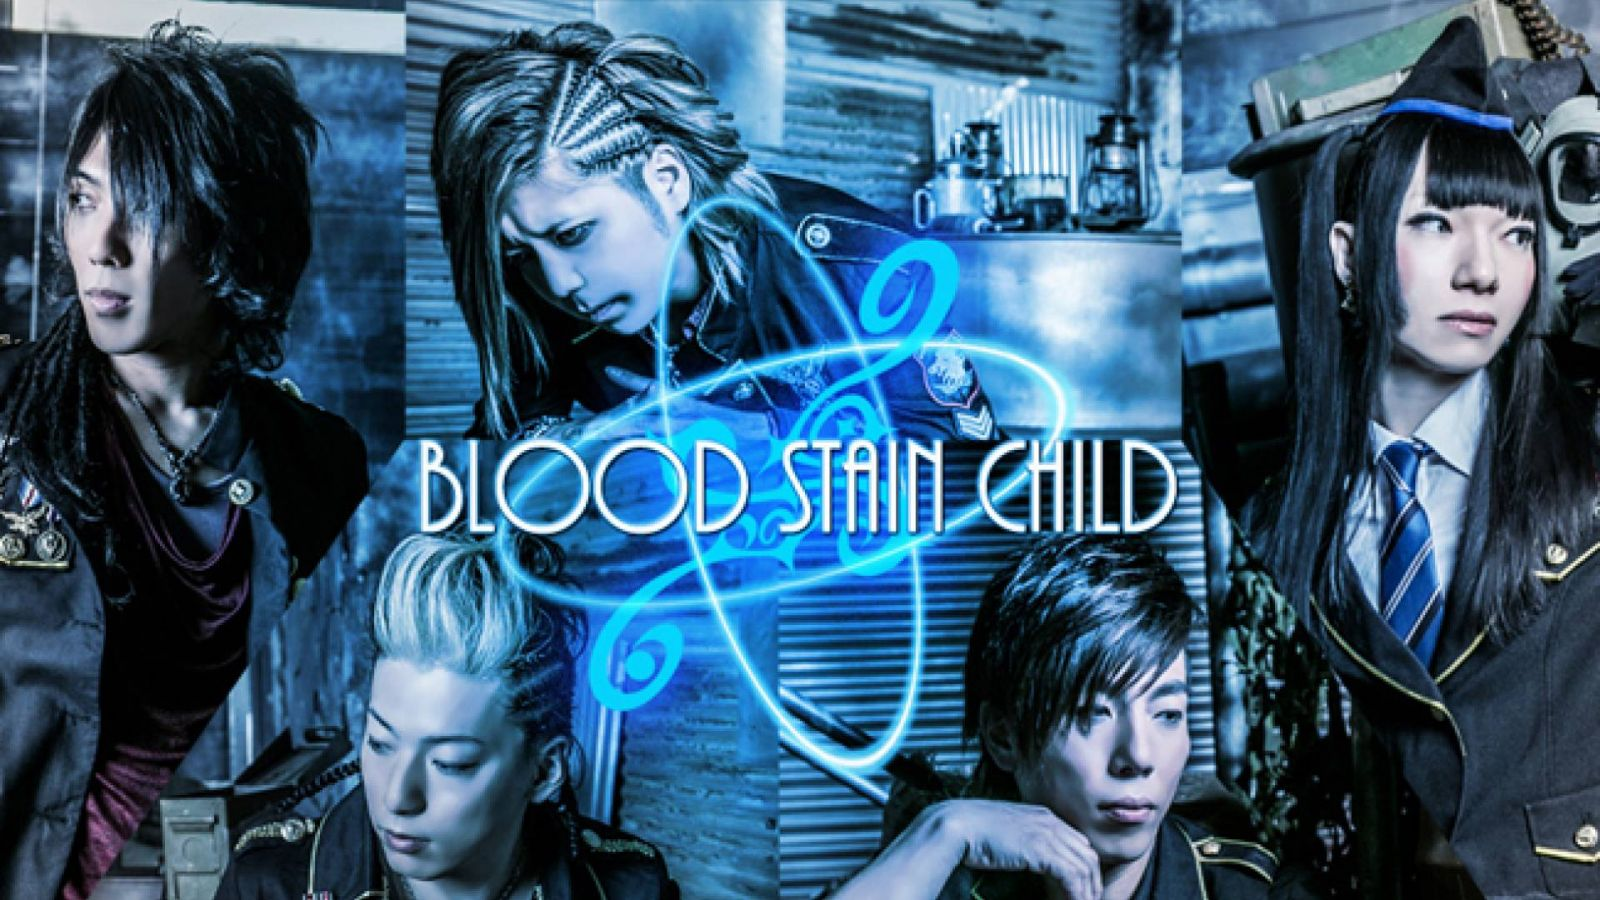 Подробности цифровых синглов BLOOD STAIN CHILD © BLOOD STAIN CHILD. All rights reserved.